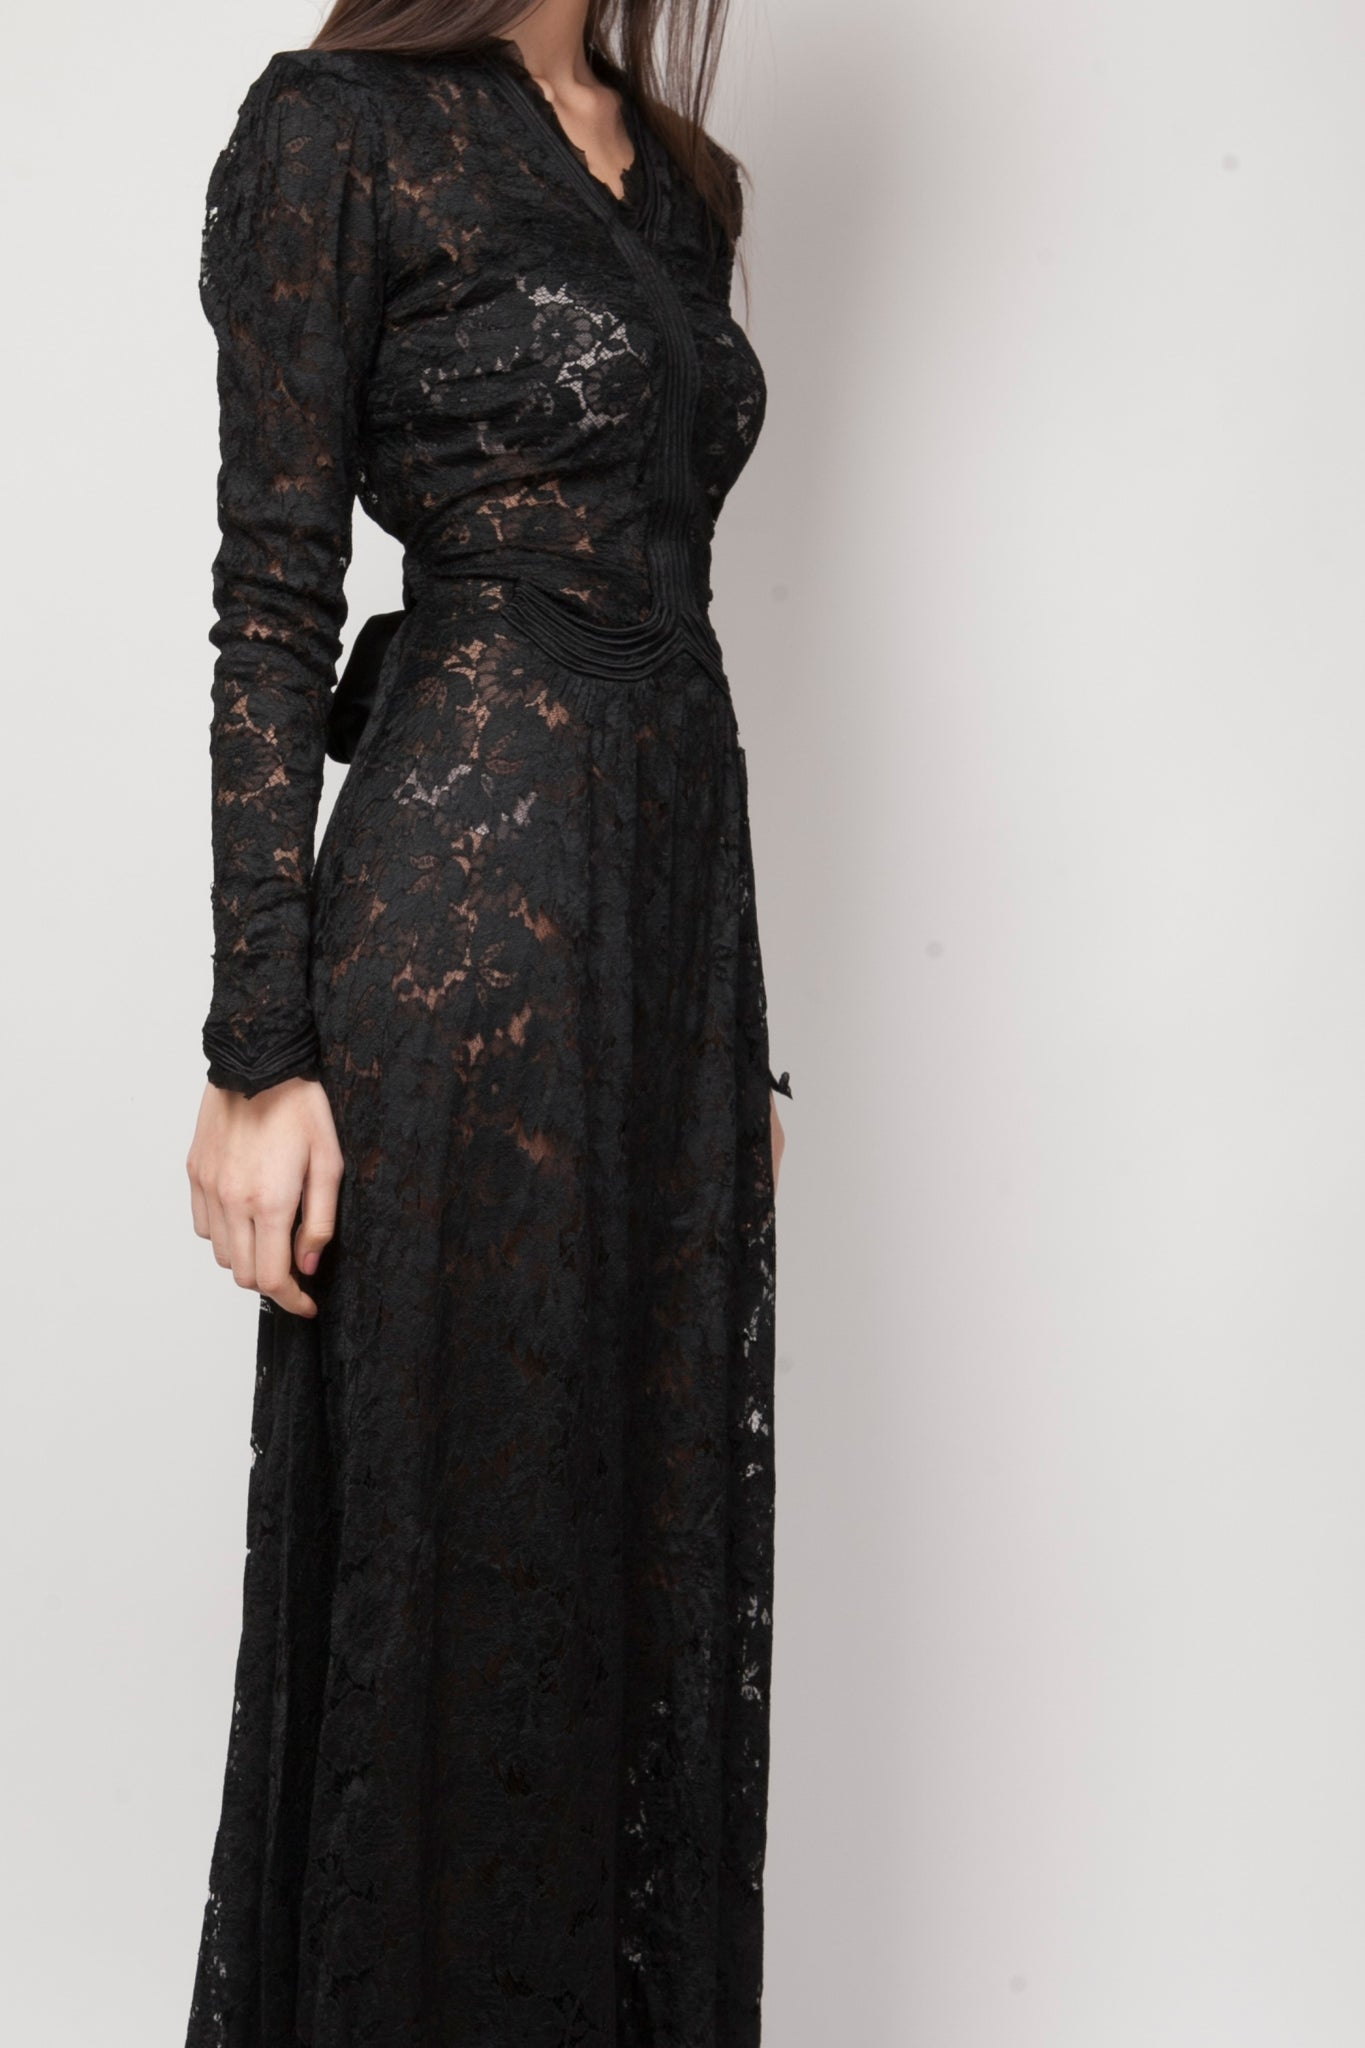 Antique vintage lace dress - SoLovesVintage